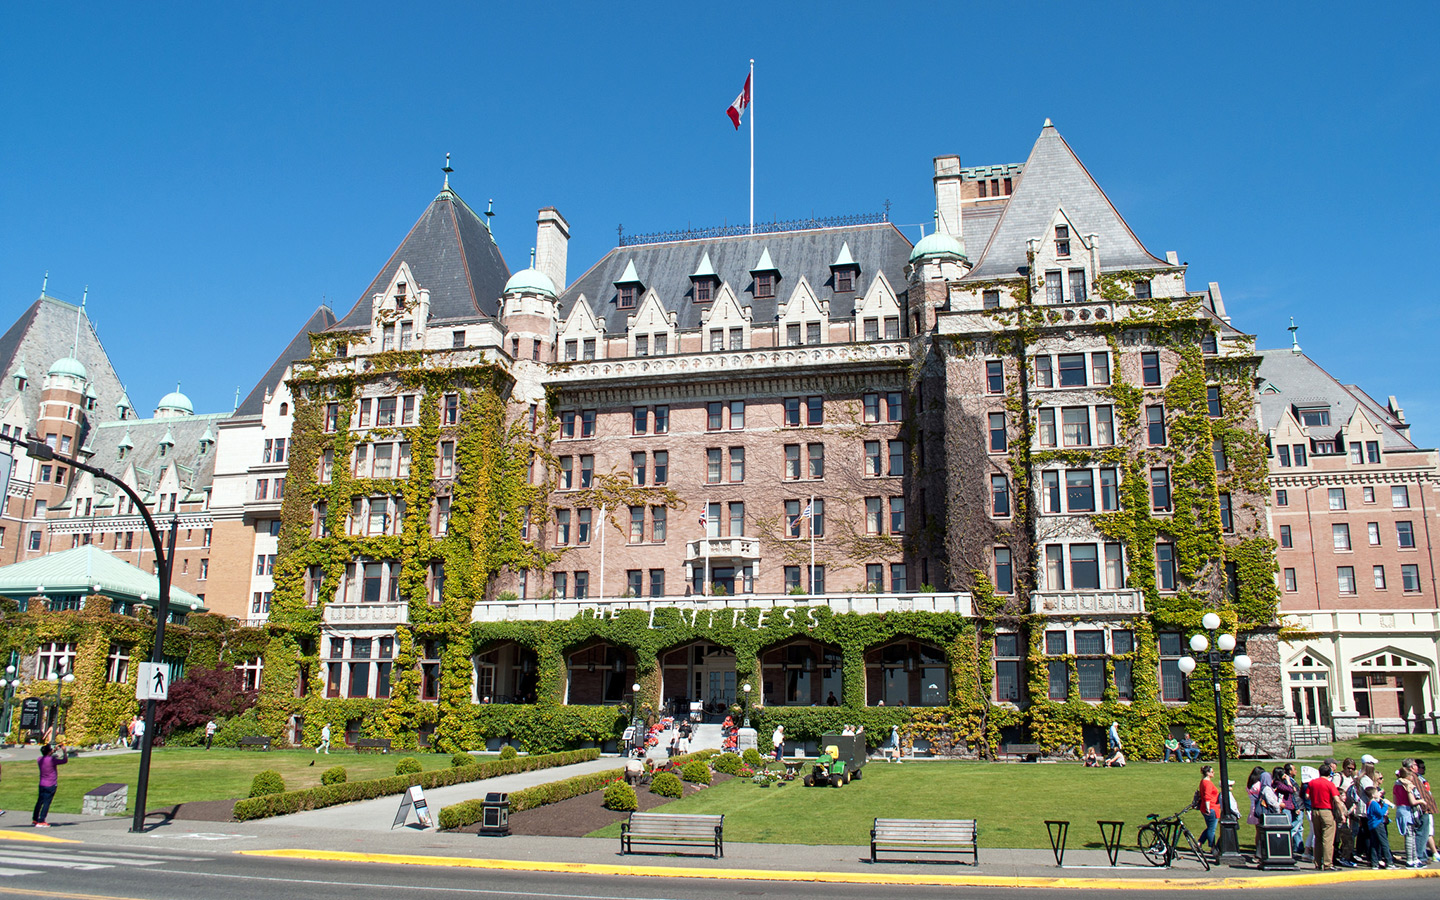 Fairmont Empress hotel in Victoria, British Columbia